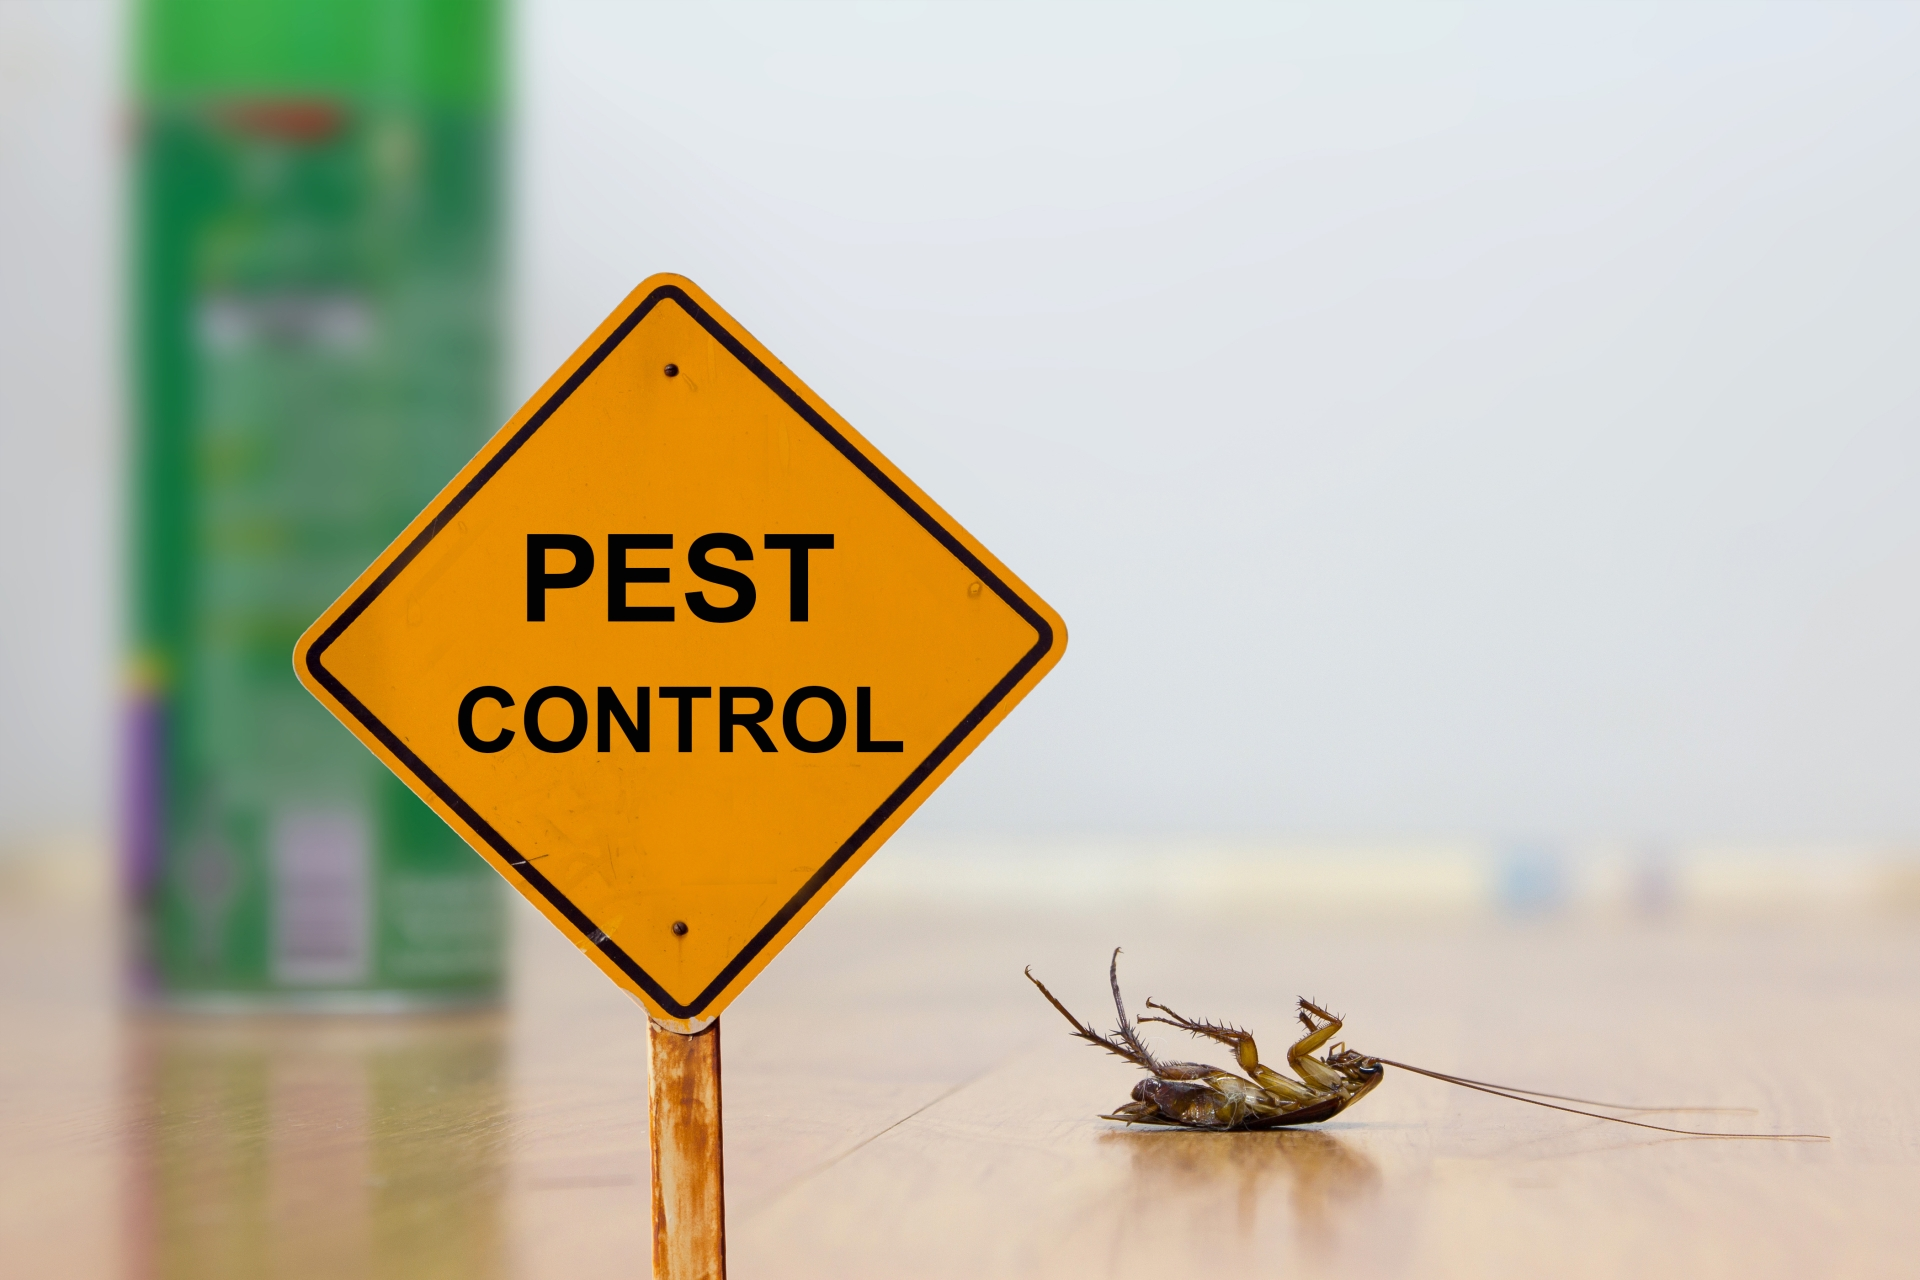 24 Hour Pest Control, Pest Control in Earlsfield, SW18. Call Now 020 8166 9746